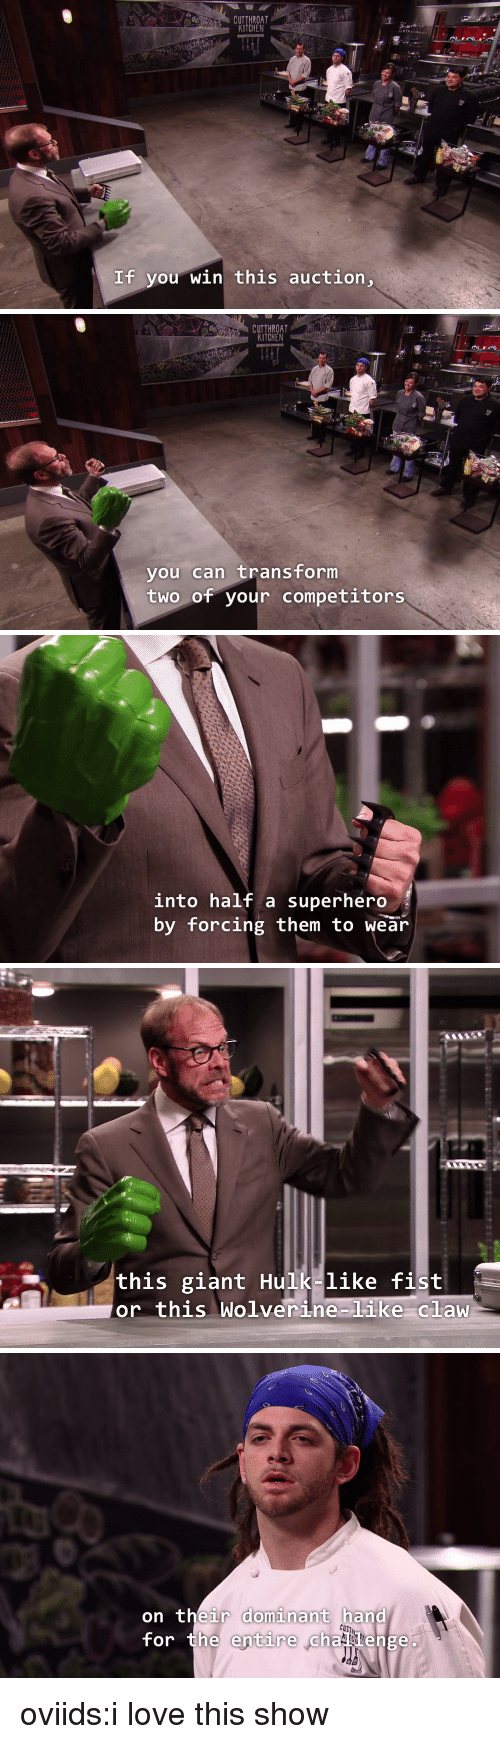 Love, Superhero, and Tumblr: CUTTHROAT  KITCHEN  If you win this auction,   CUTTHROAT  KITCHEN  you can transform  two of your competitors   into half a superhero  by forcing them to wear   this giant Hulk-like fist  or this Wolverine-like claw   on their dominant hand  for the entire chaenge oviids:i love this show